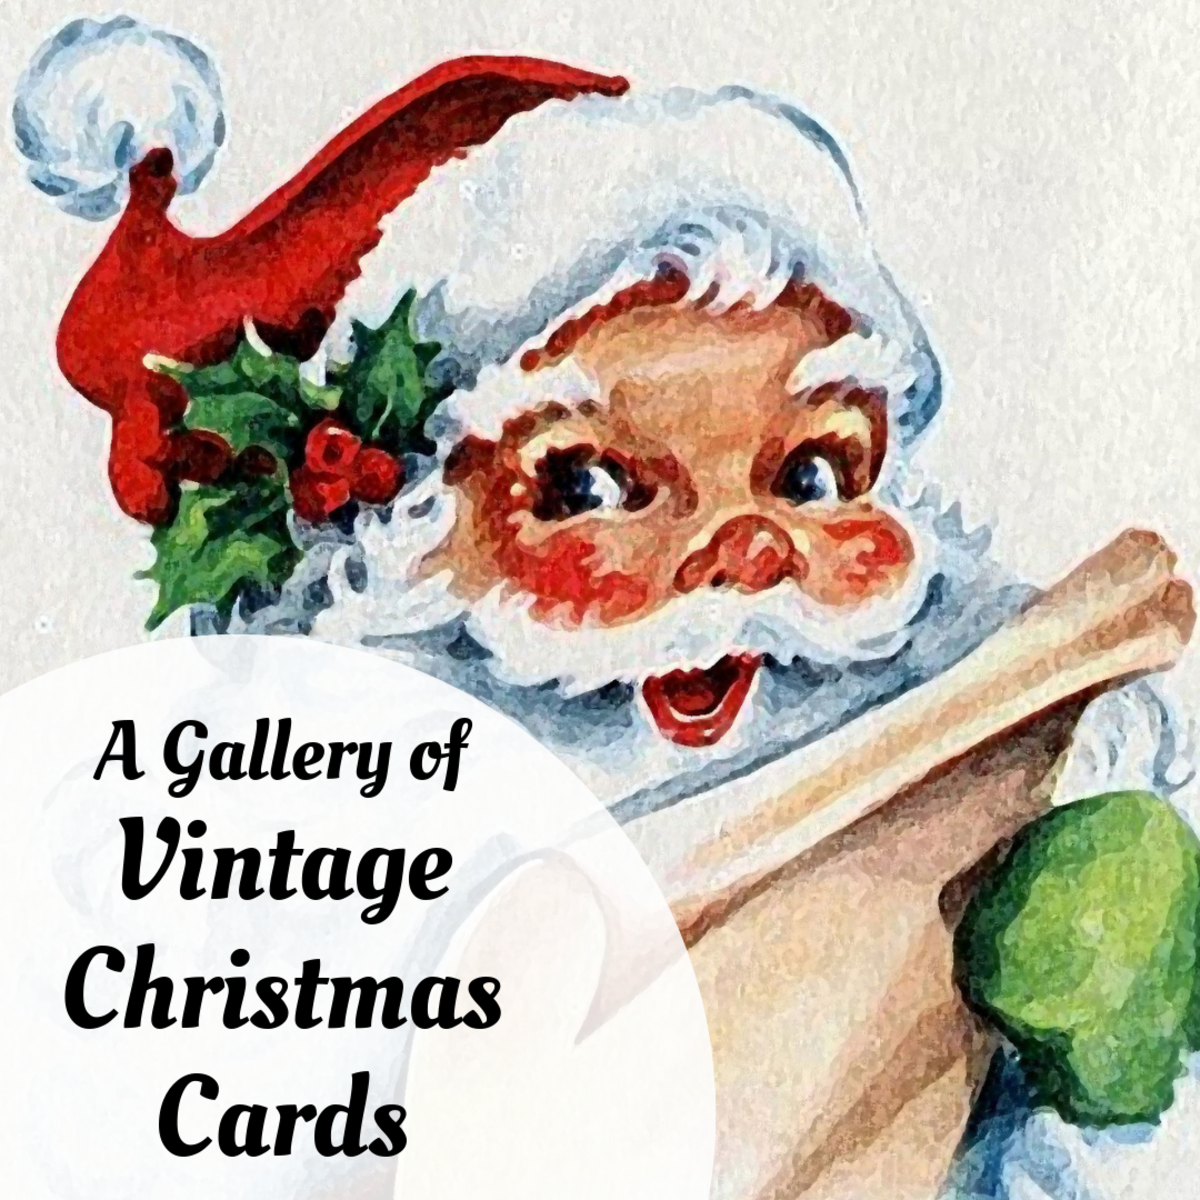 Look over some lovely, nostalgic Christmas cards from days past.